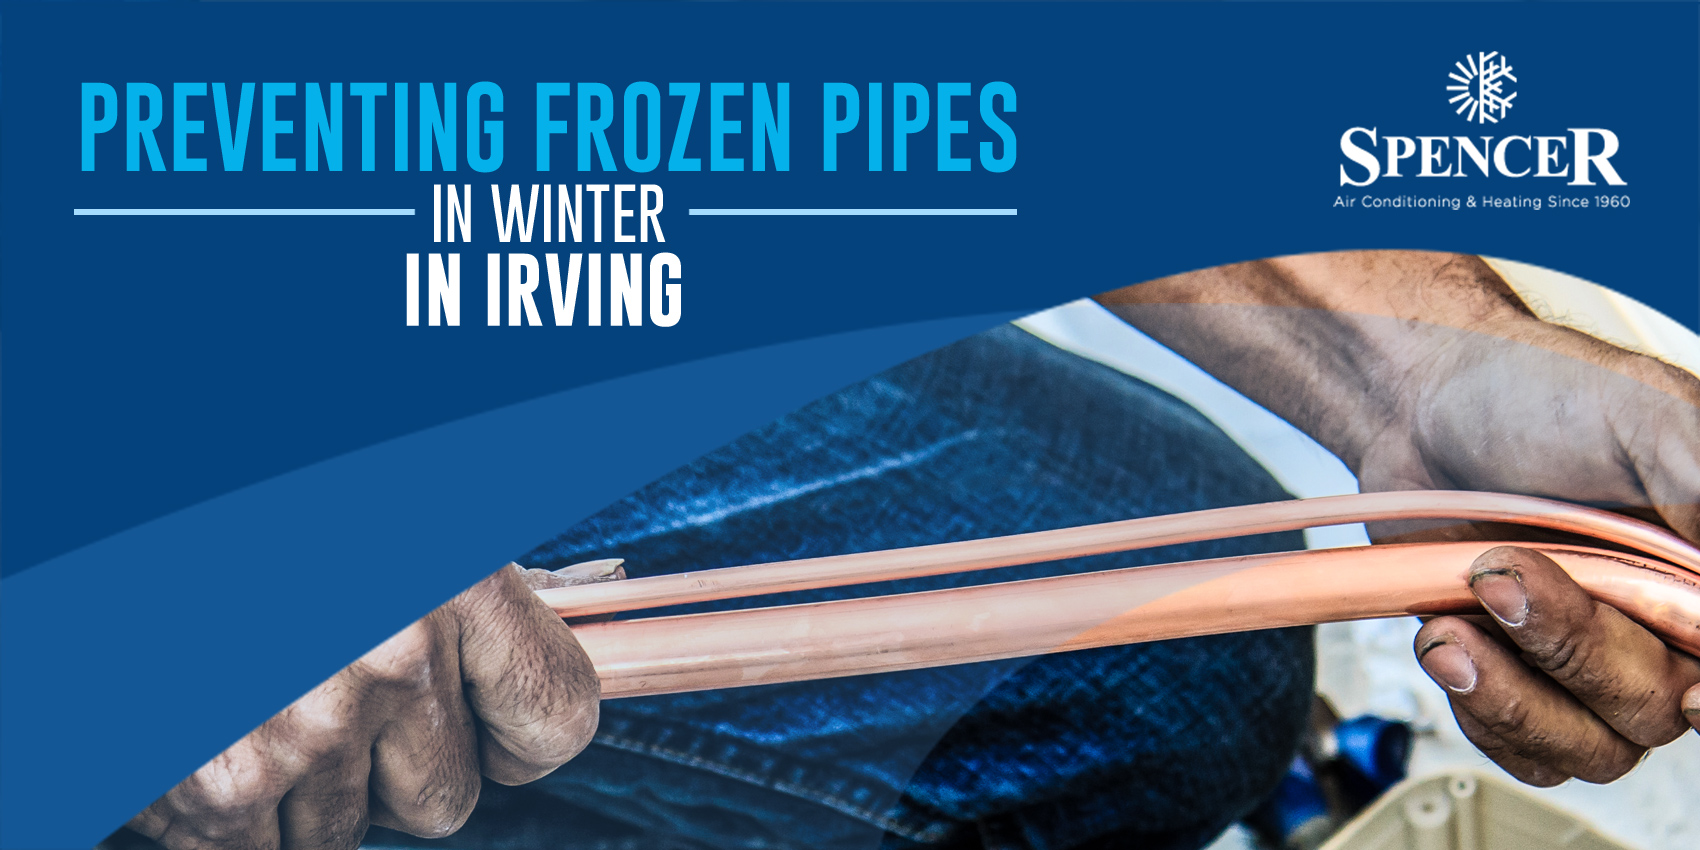 Preventing Frozen Pipes in Winter in Irving